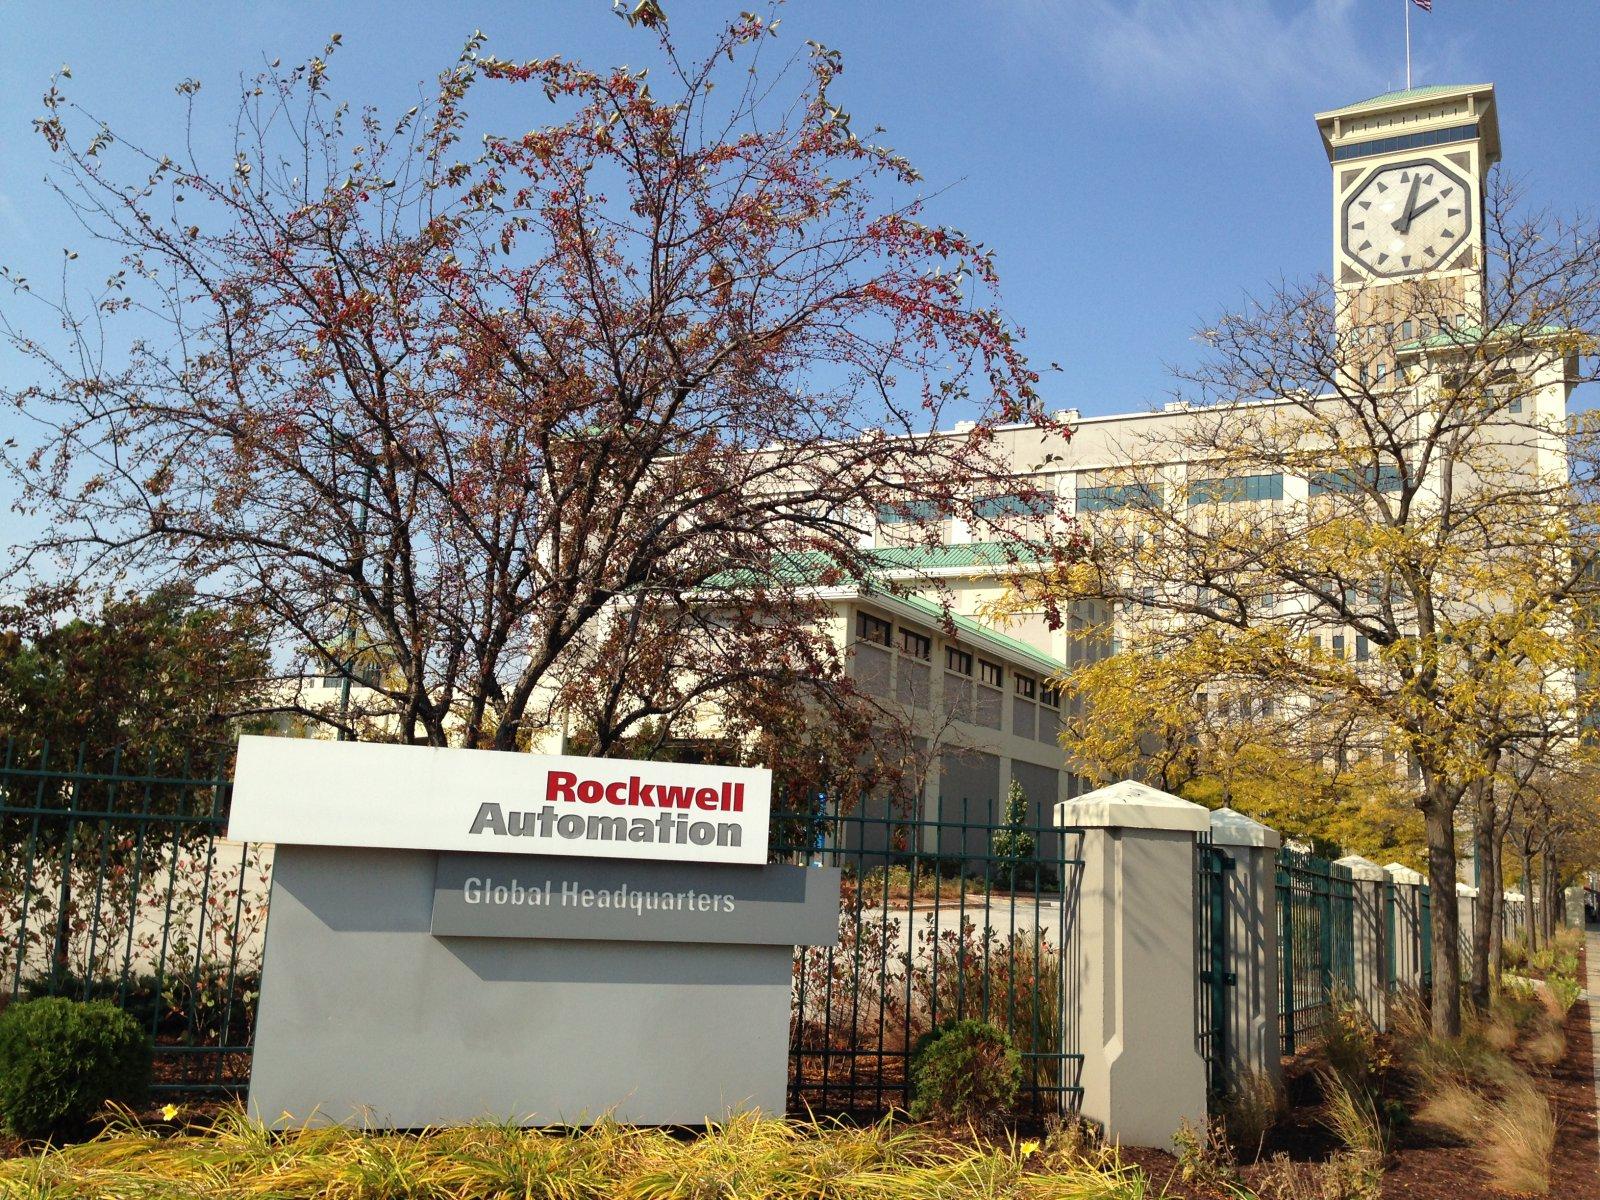 Rockwell Automation, 1201-1251 S. 2nd St.